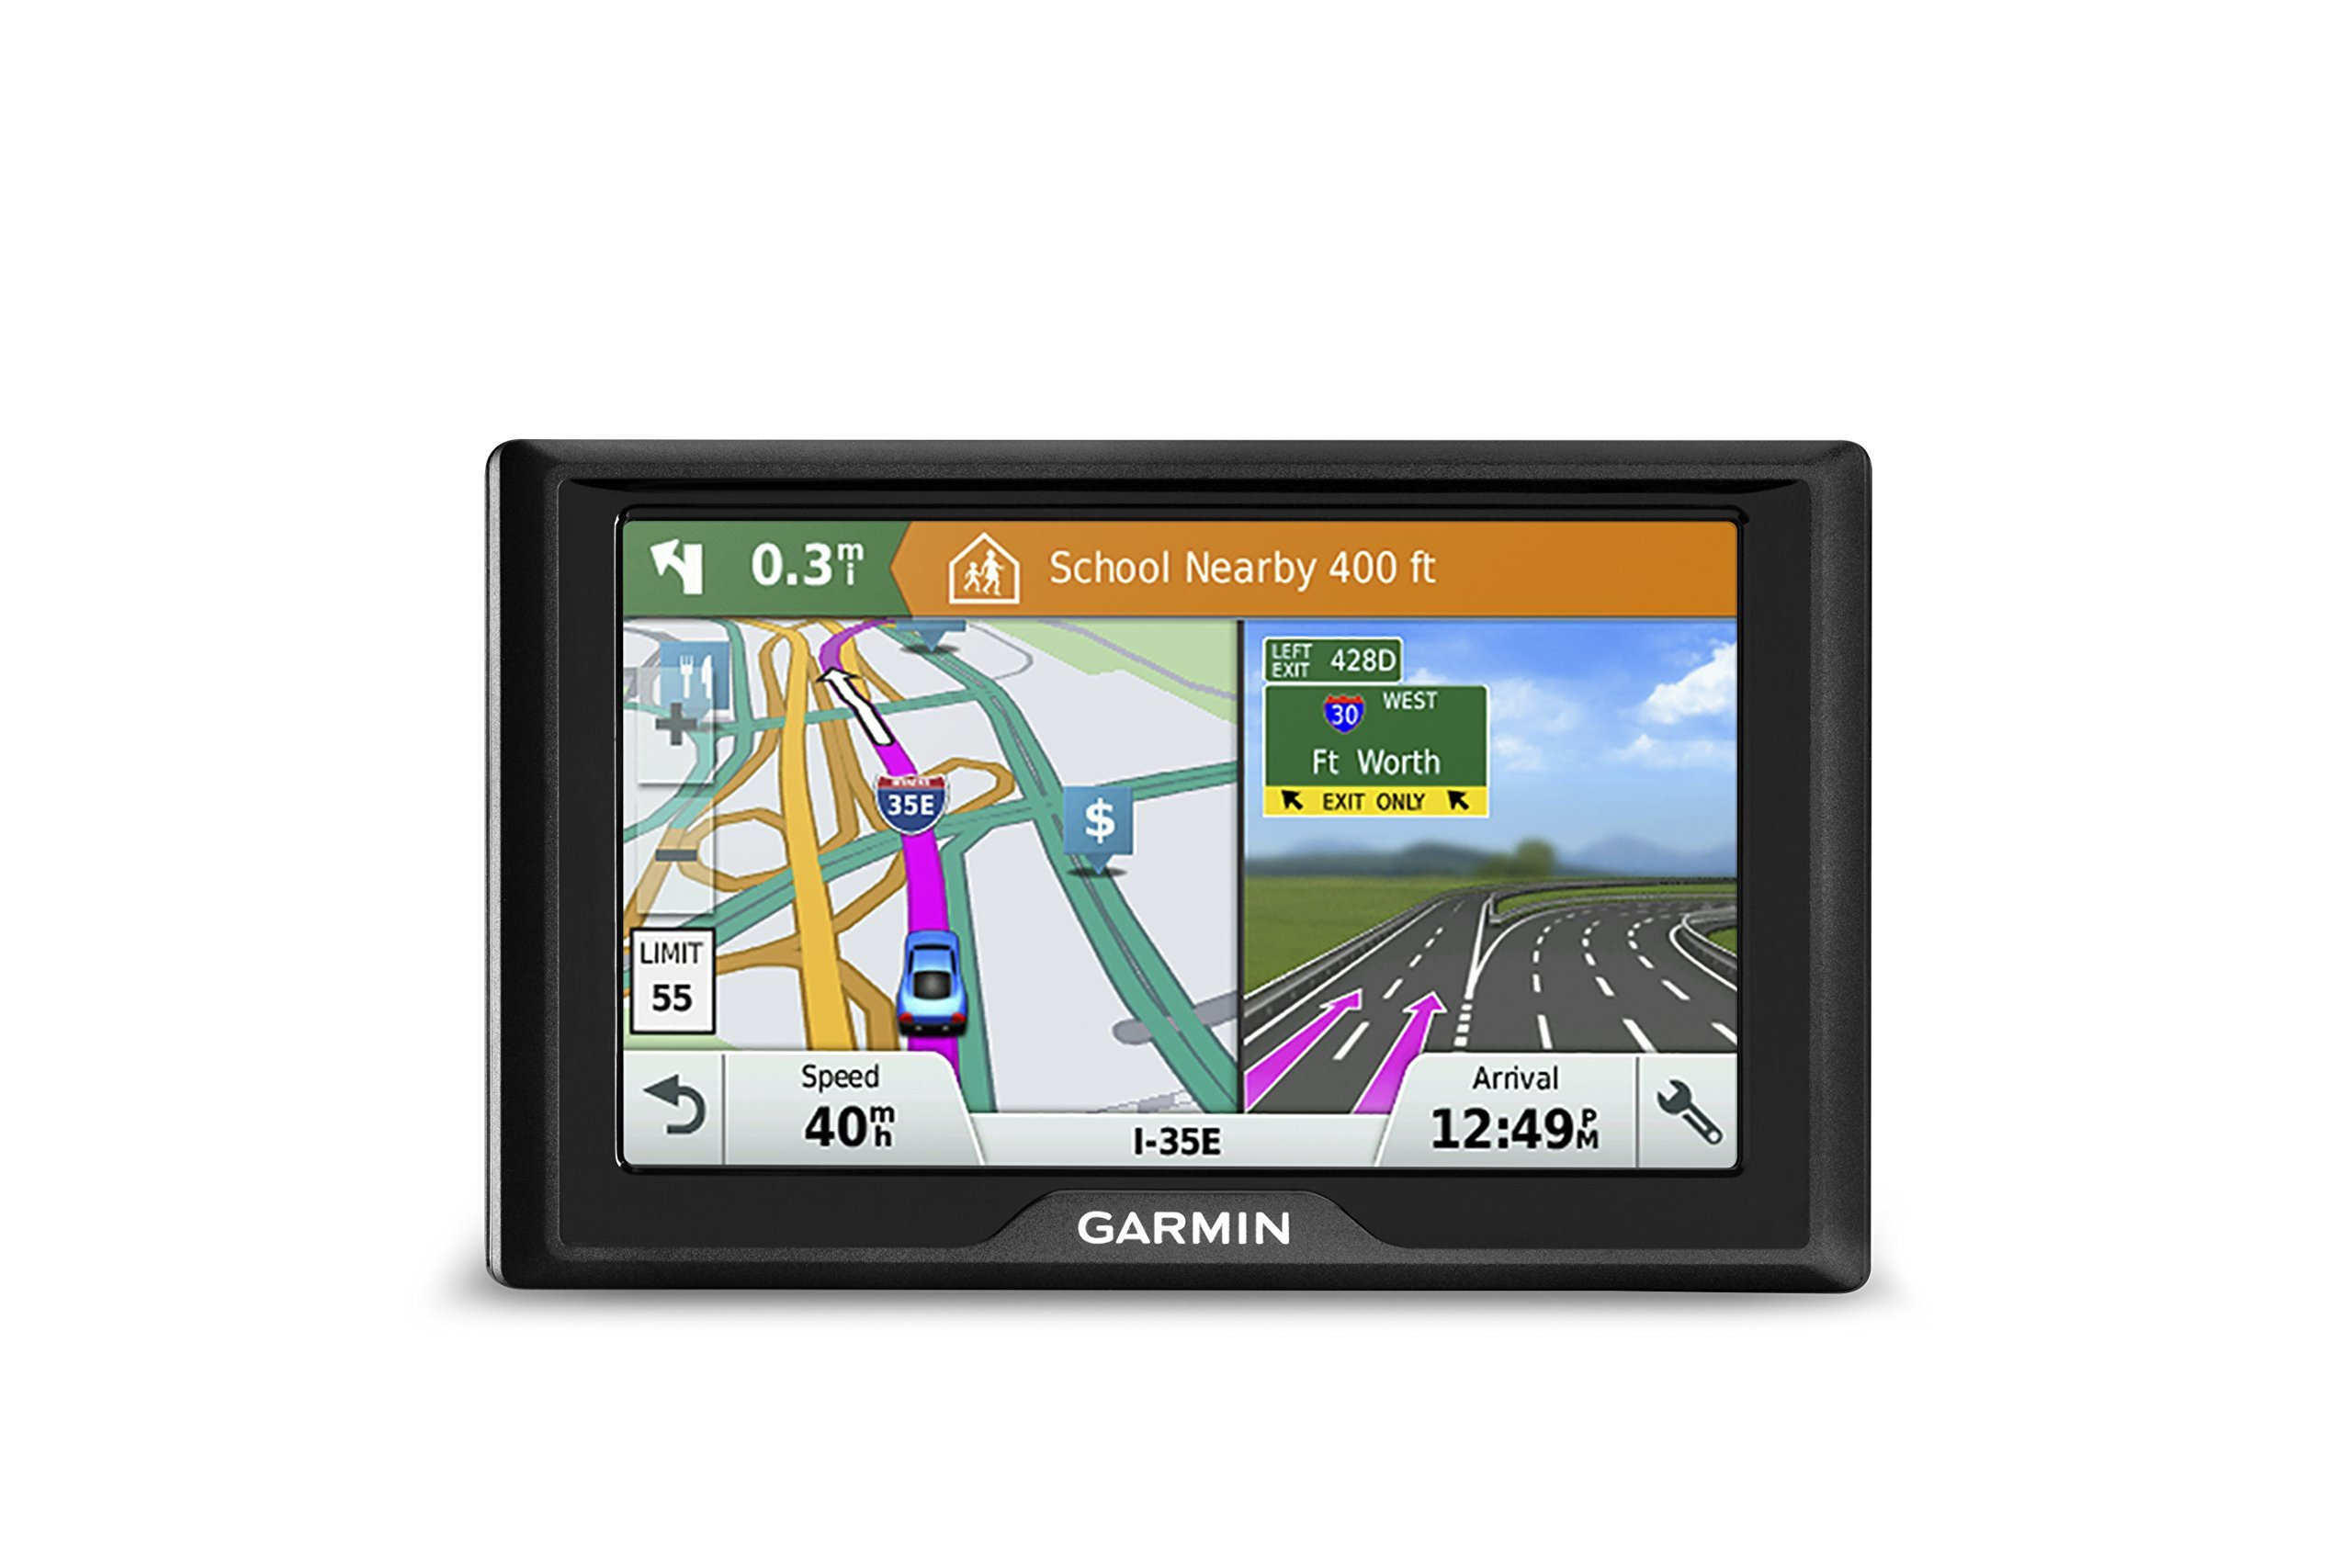 Garmin Drive 51 USA LM GPS Navigator System with Lifetime Maps, Spoken Turn-By-Turn Directions, Direct Access, Driver Alerts, TripAdvisor and Foursquare Data (Renewed) by Garmin